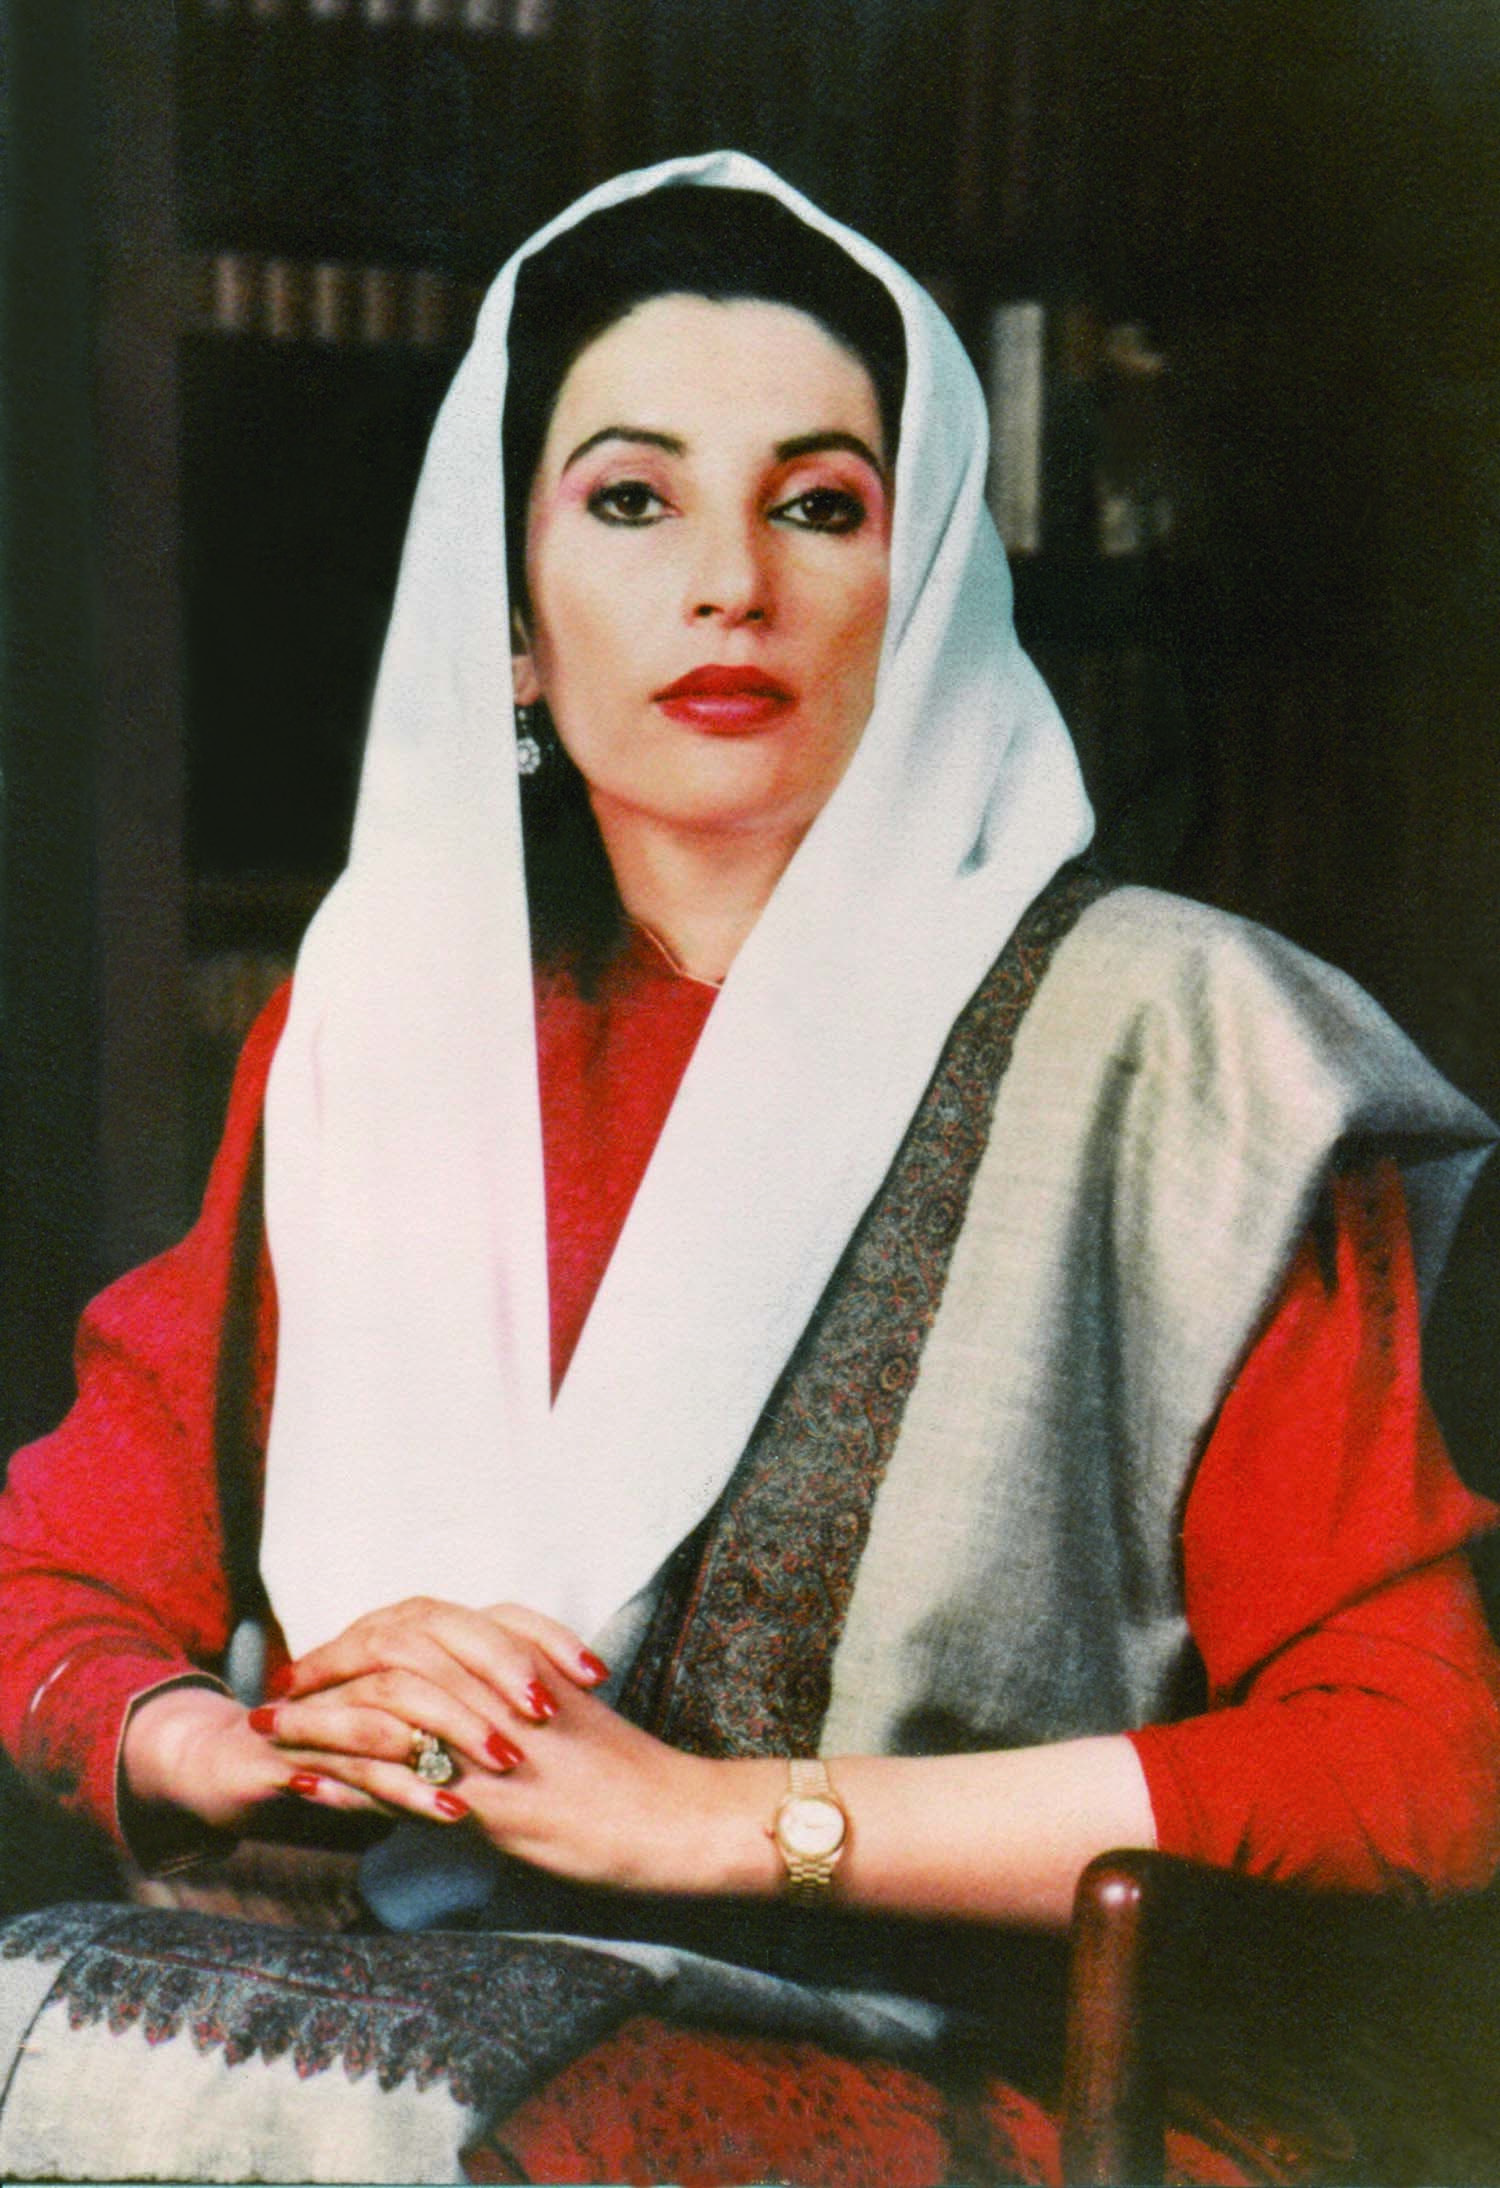 BACK in the comfort of her office, Benazir was a true Daughter of the East, a dignity that launched a thousand political ships. | Photo: DEMP